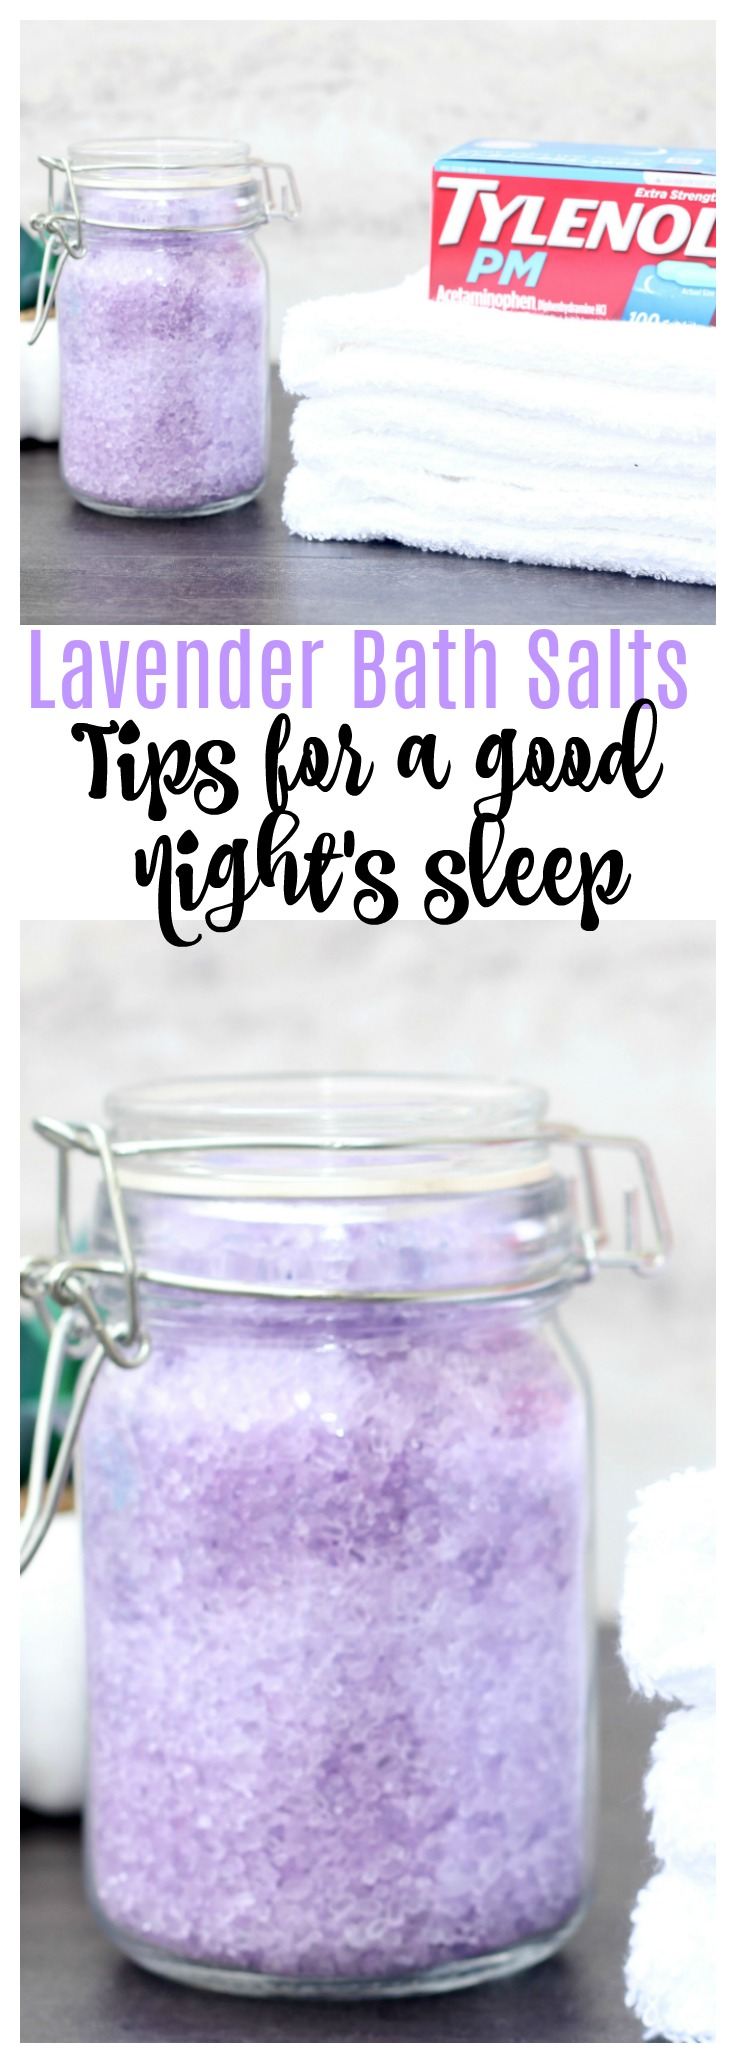 Tips for a Better Night's Sleep + DIY Lavender Bath Salts